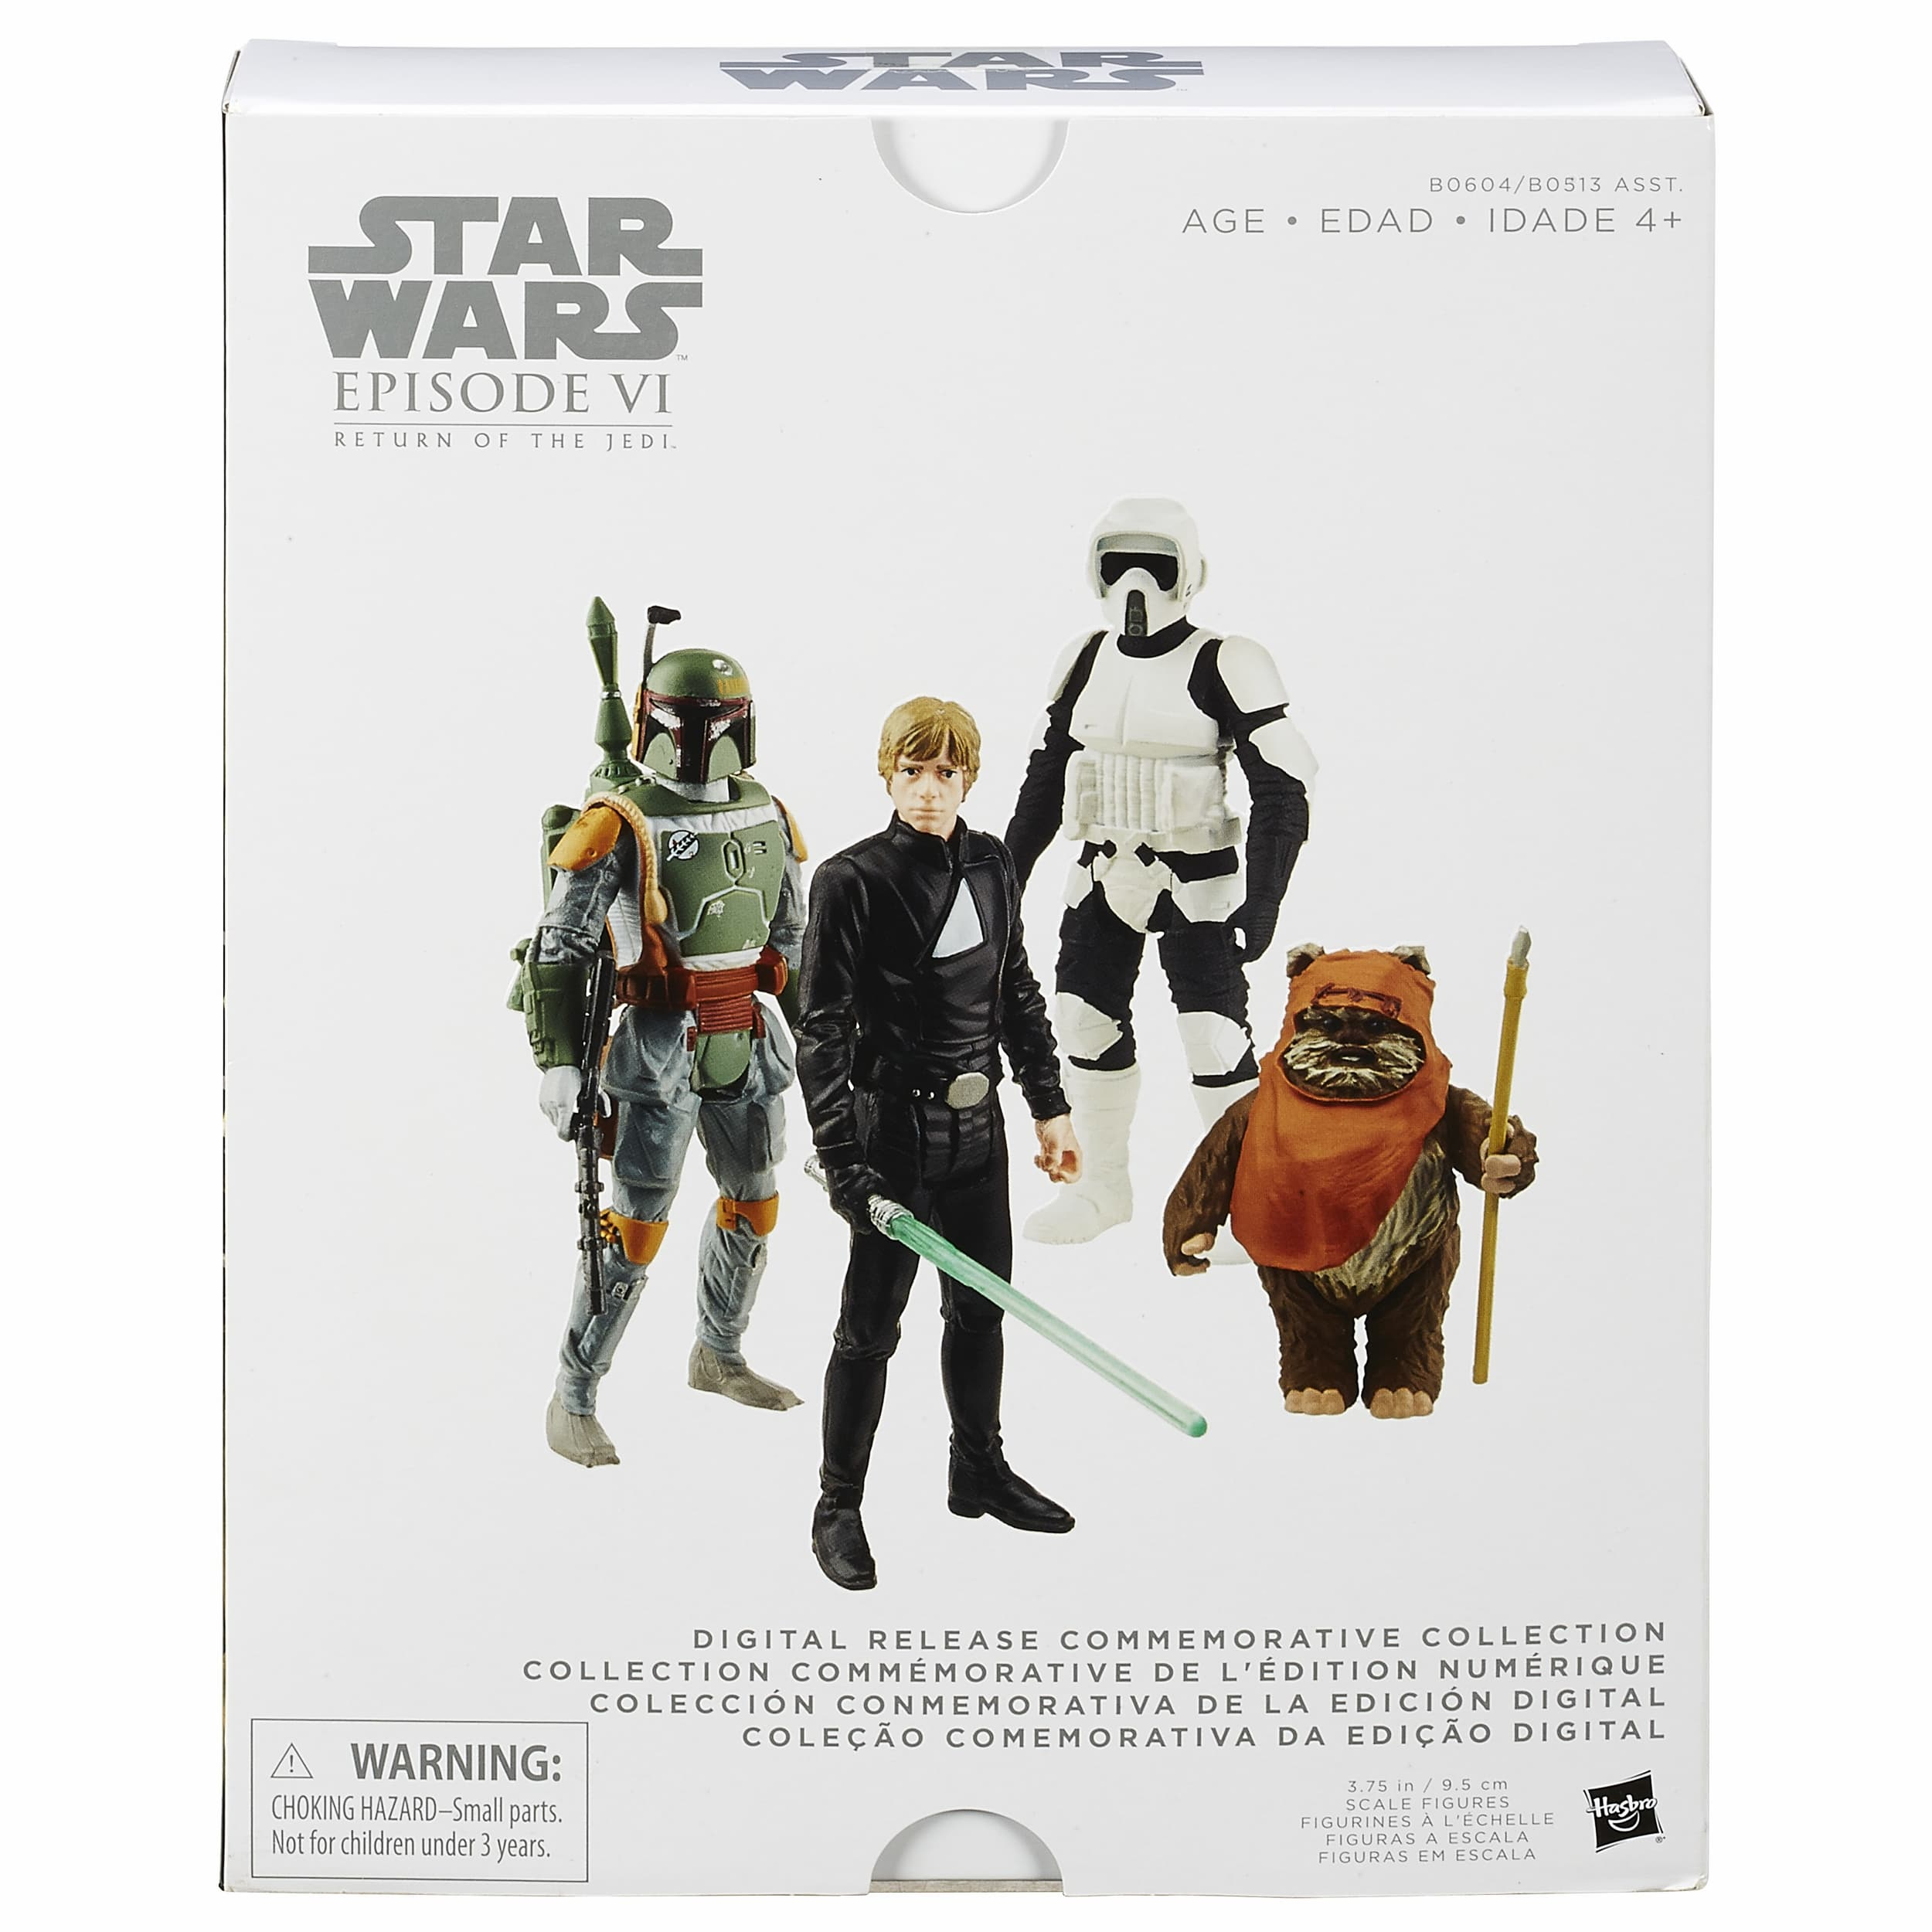 Star Wars Digital Release Commemorative Collection Four Pack, Return of the Jedi, Boxed (2015)